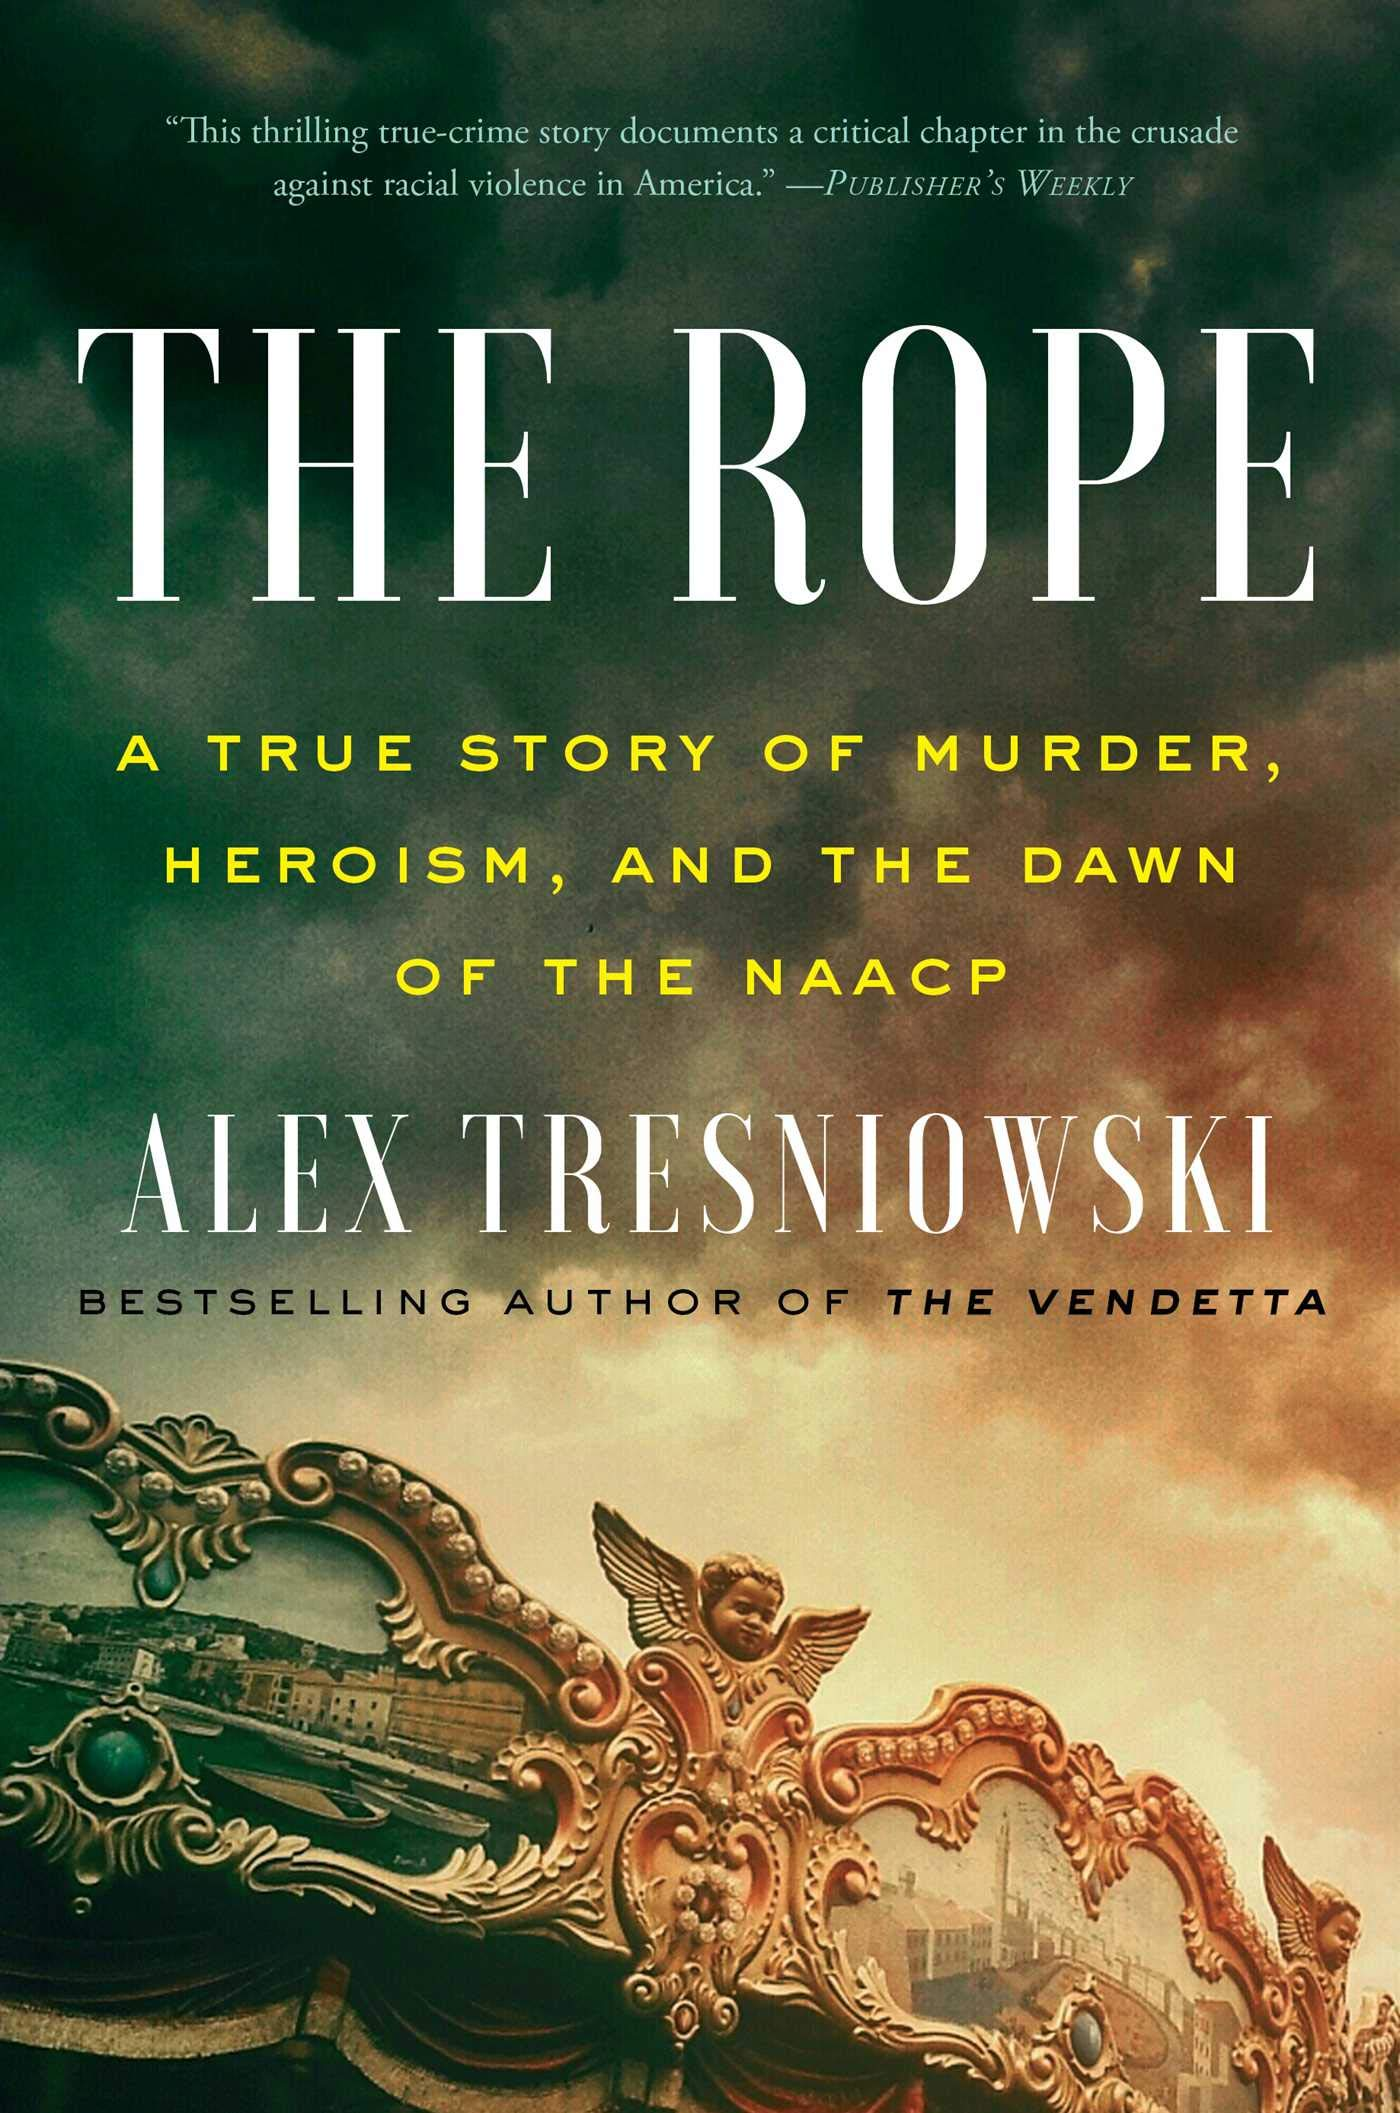 Book Cover: The Rope: A True Story of Murder, Heroism, and the Dawn of the NAACP